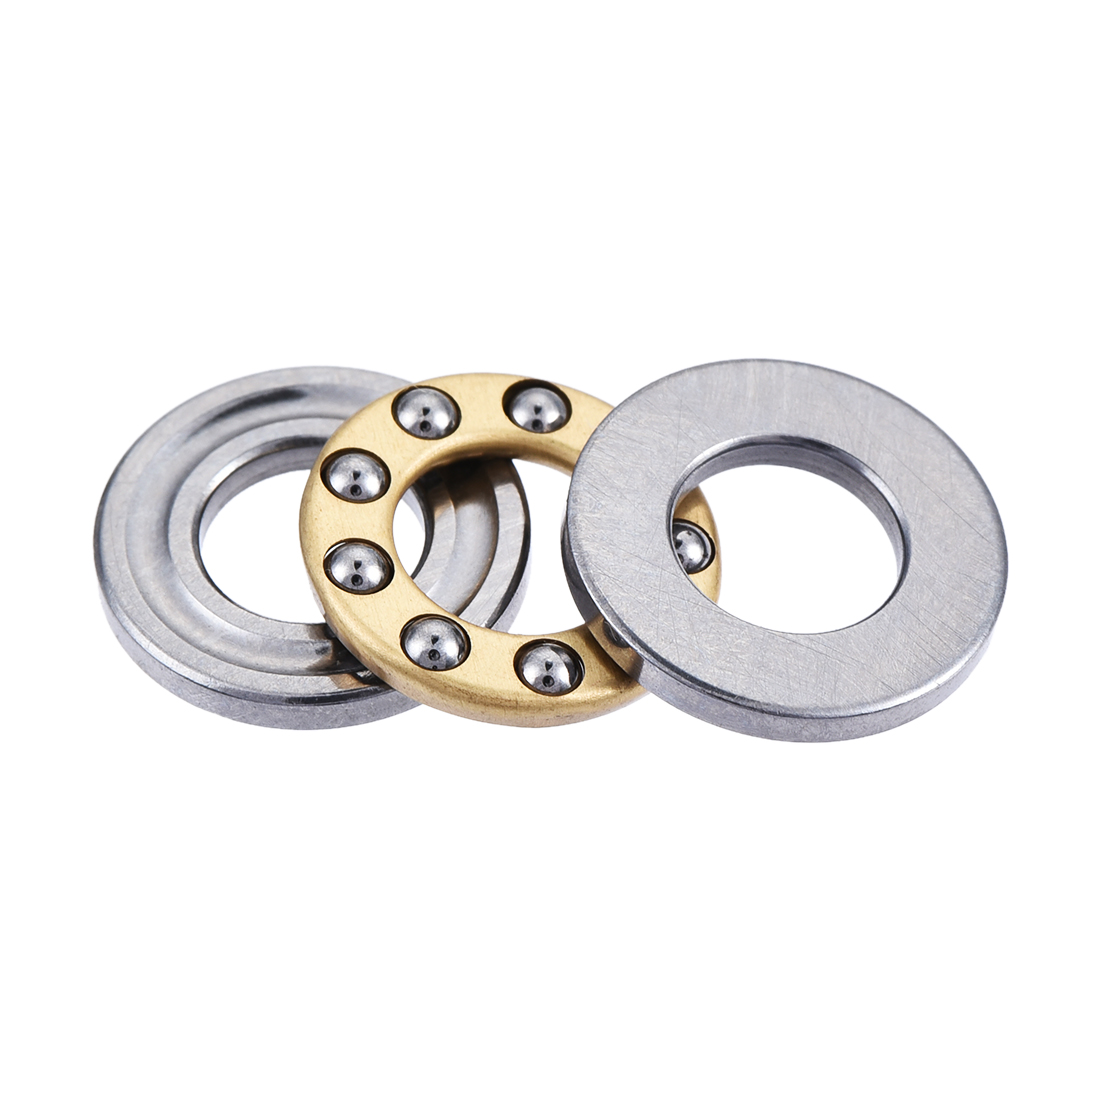 Flat Seat Thrust Ball Bearing 6mm Inner Dia 12mm OD